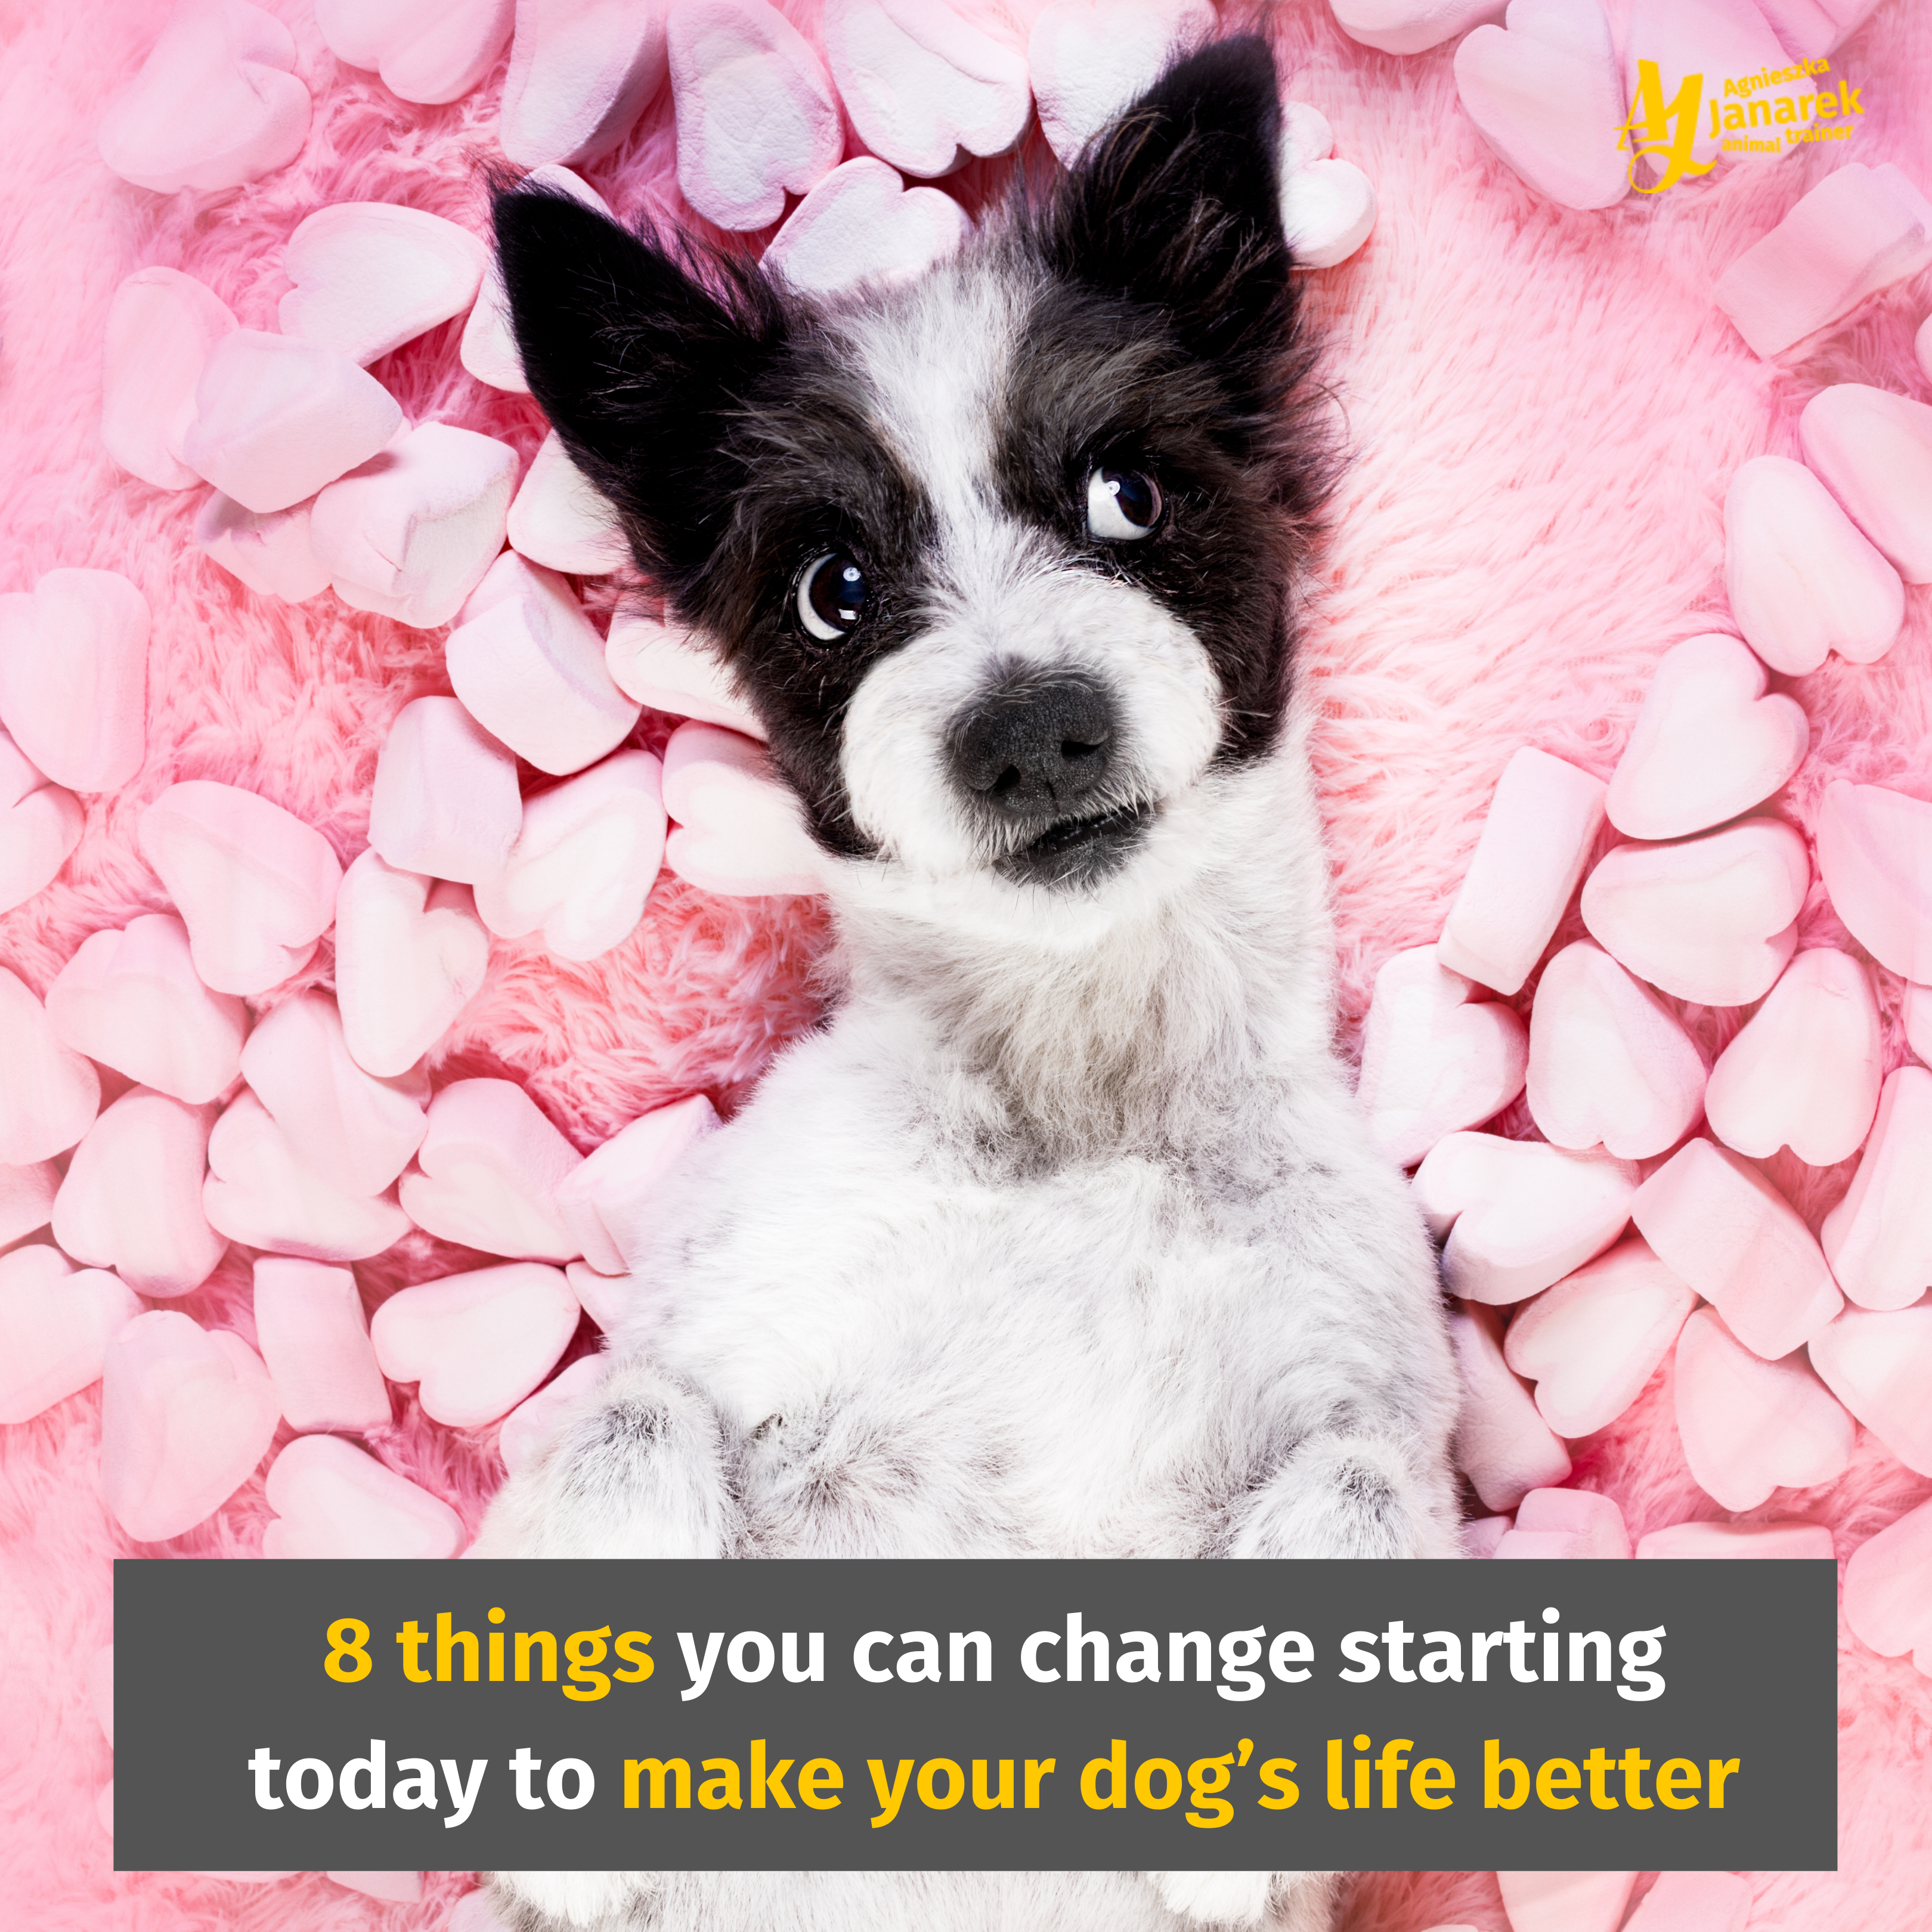 8 Things You Can Change Starting Today To Make Your Dog's Life Better